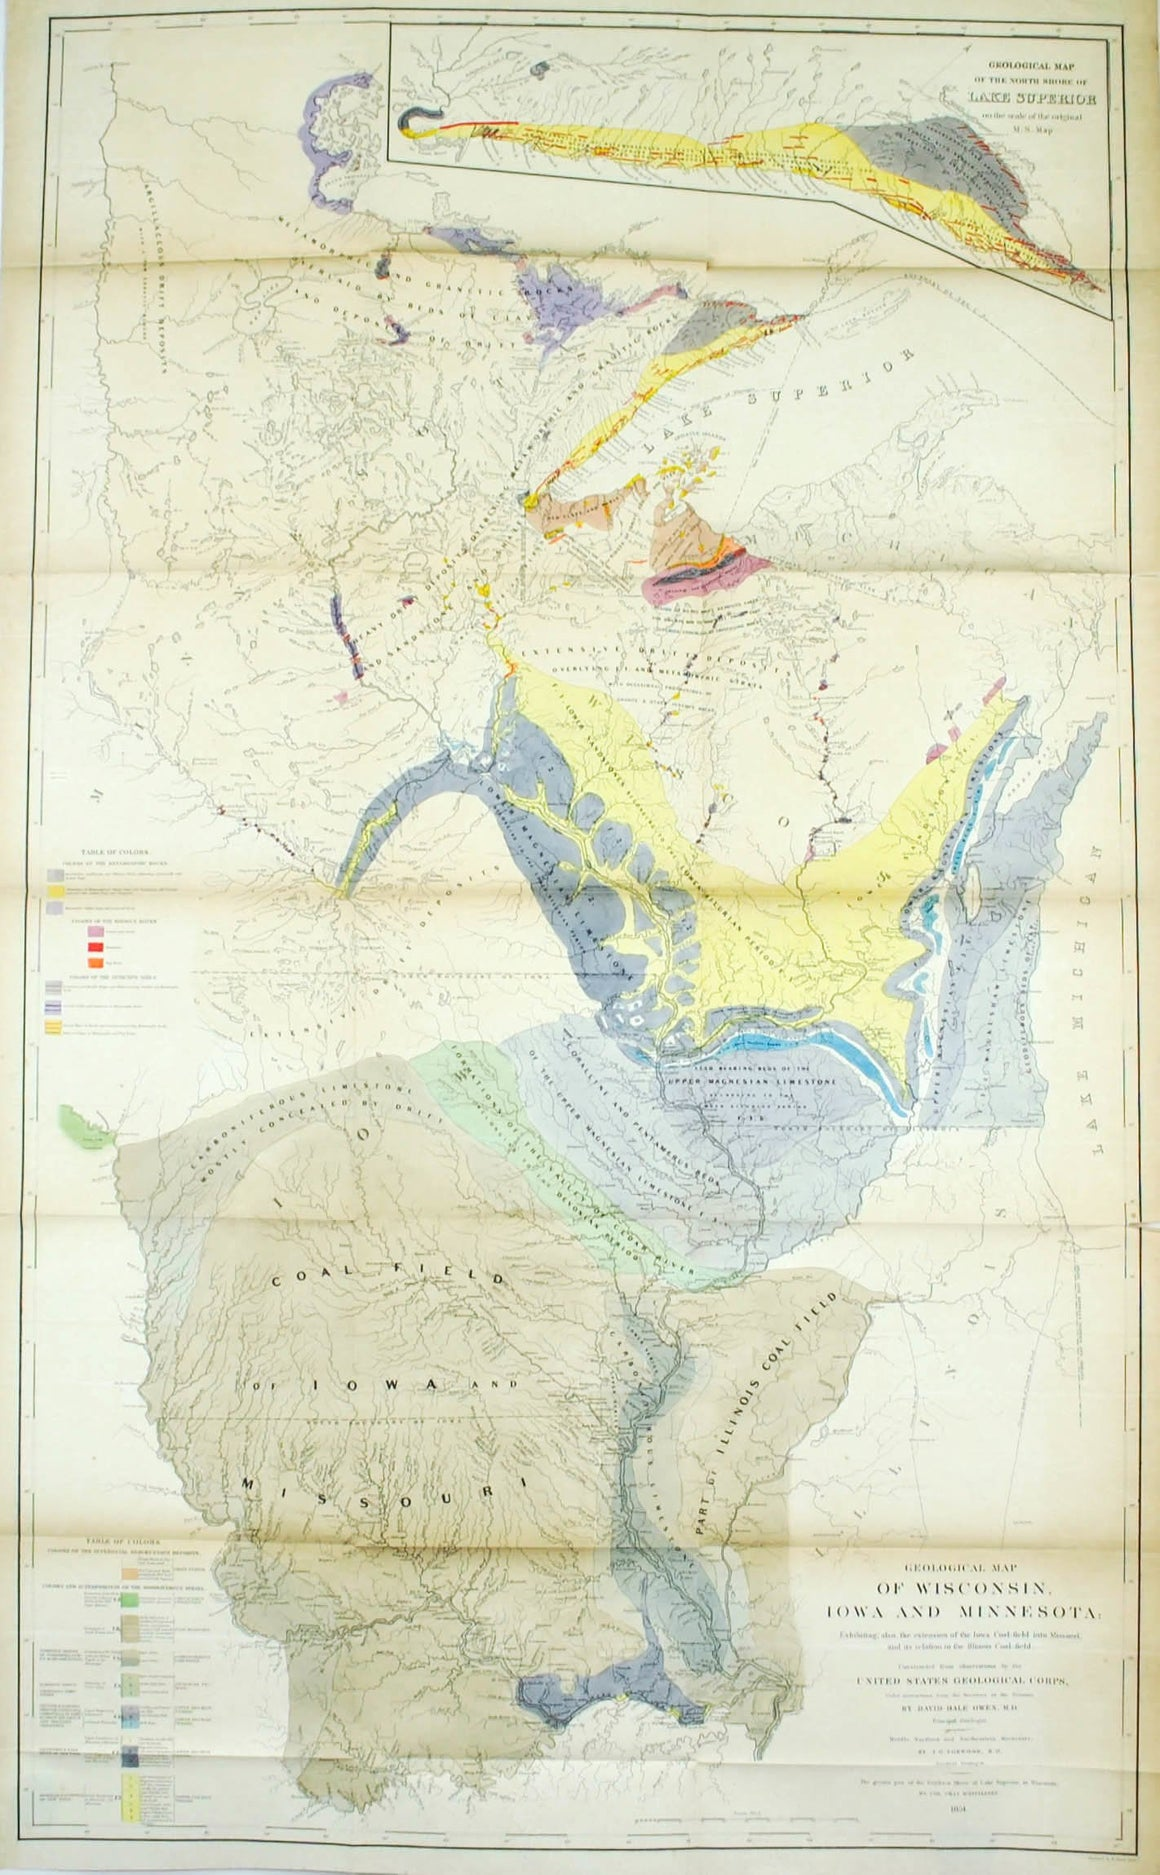 1852 Geological Map of Wisconsin, Iowa and Minnesota - David Dale Owen